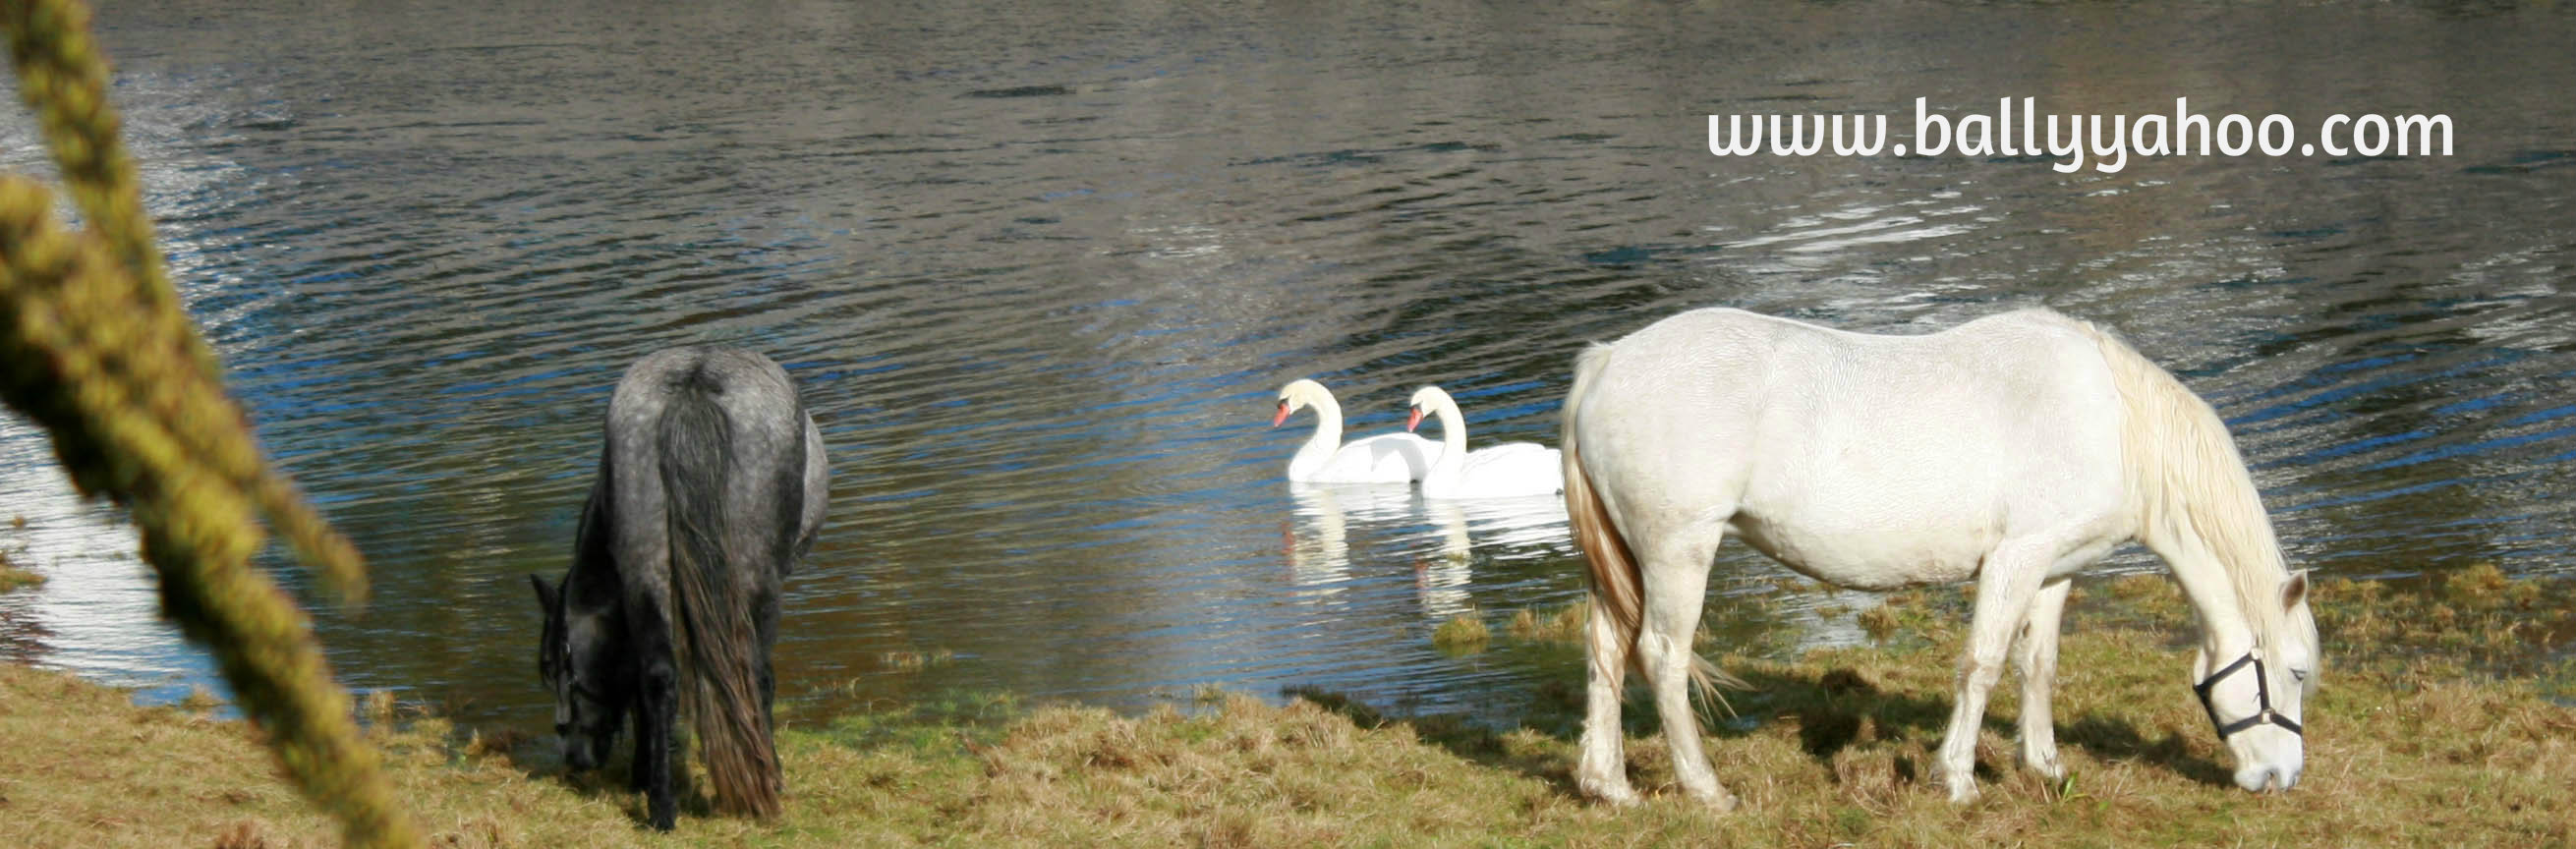 When It Rains It Swans >> Wild Swans Stories About Nature From Ireland S Magic Town Of